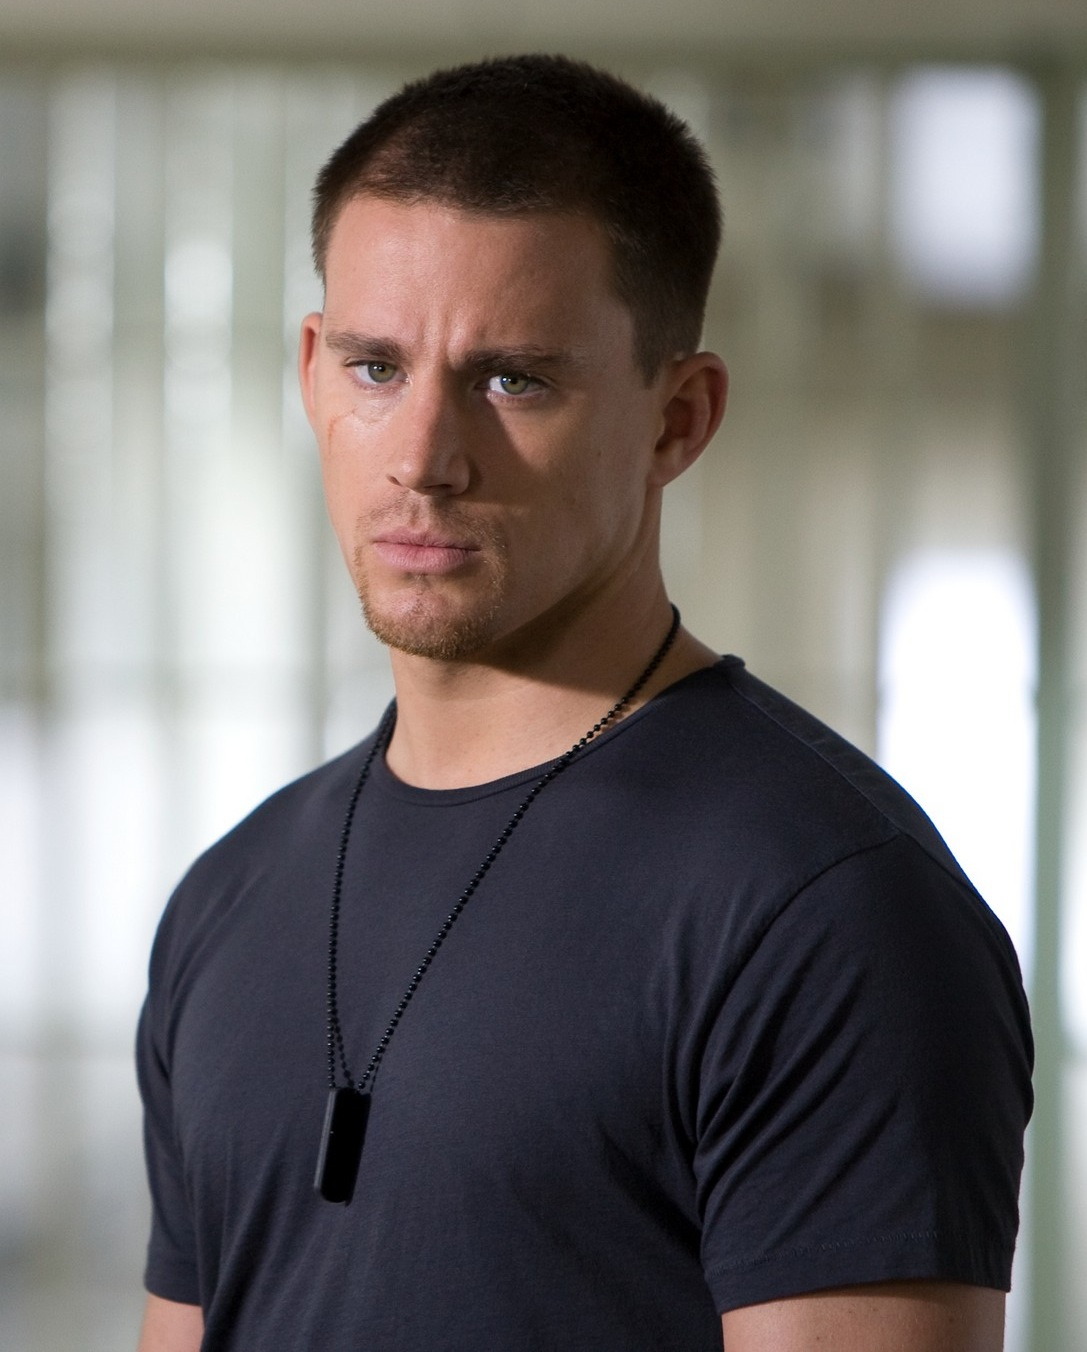 channing tatum hd wallpapers high definition free